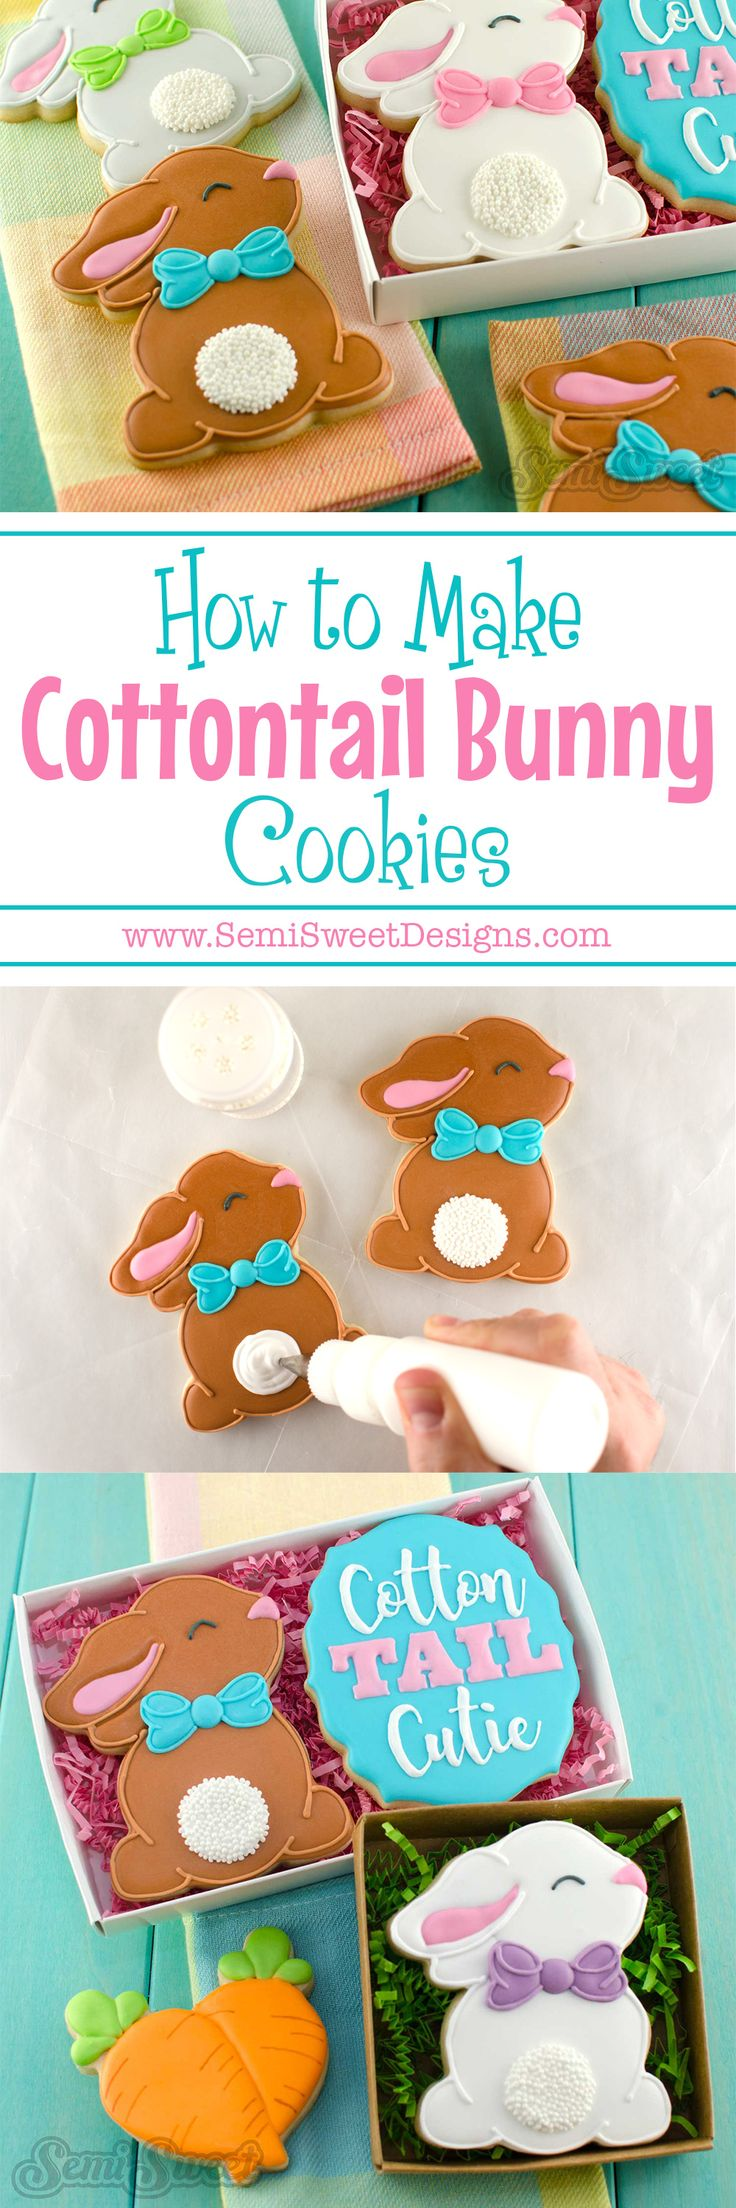 How to make cottontail bunny cookies by SemiSweetDesigns.com | Complete step by step tutorial with video and free template